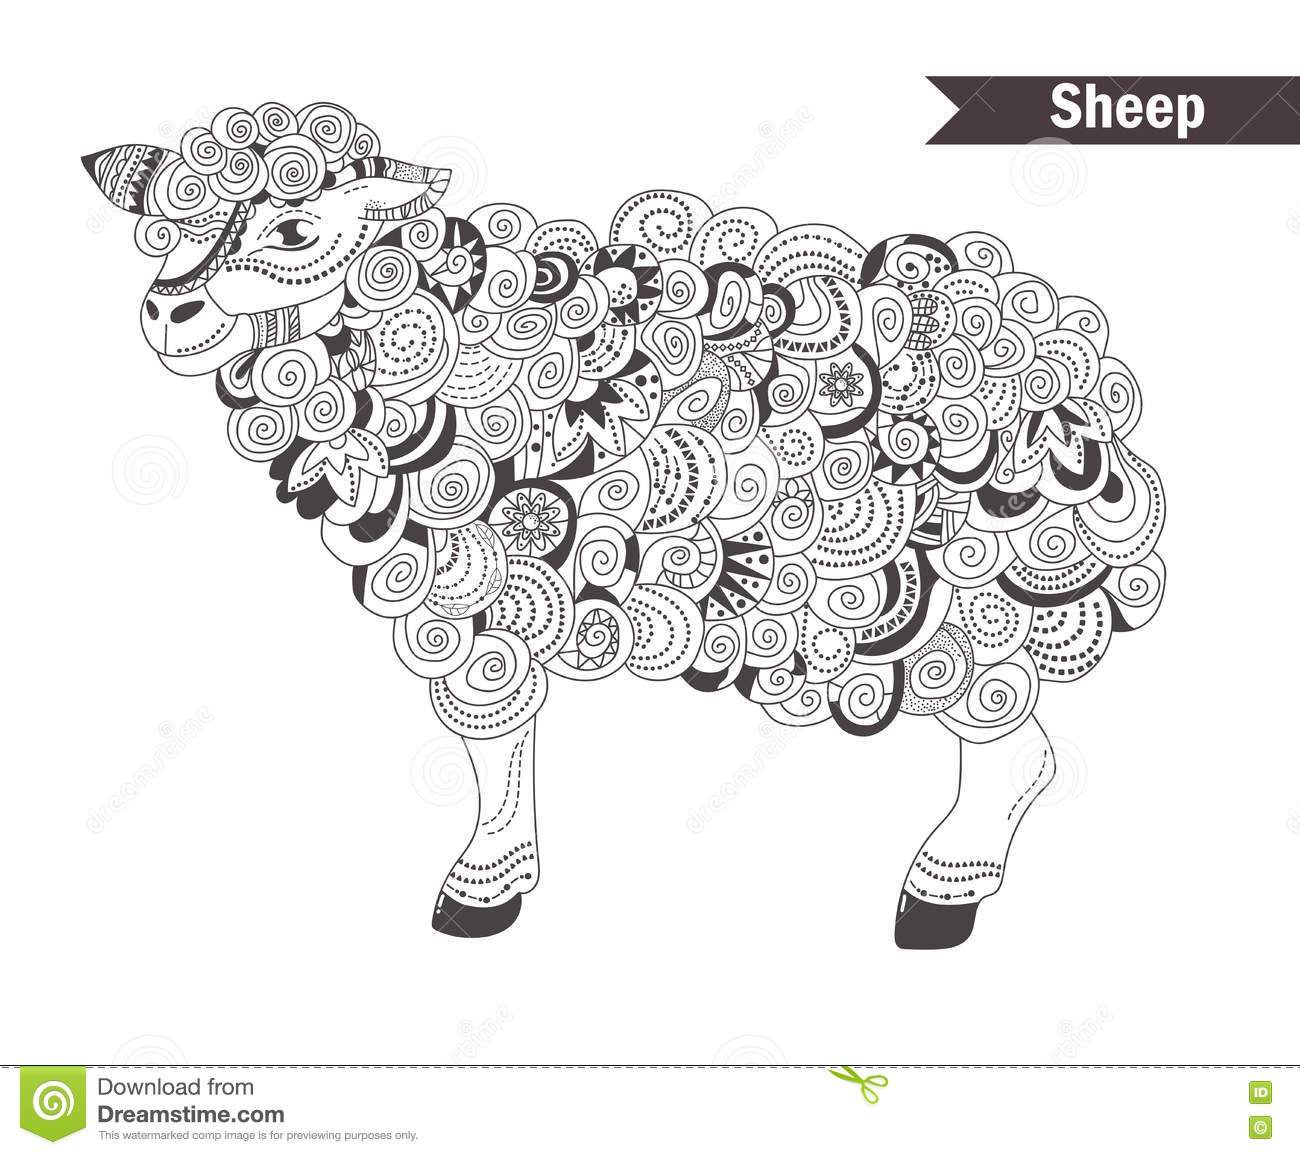 Sheep. coloring book stock vector. Illustration of book - 73044768